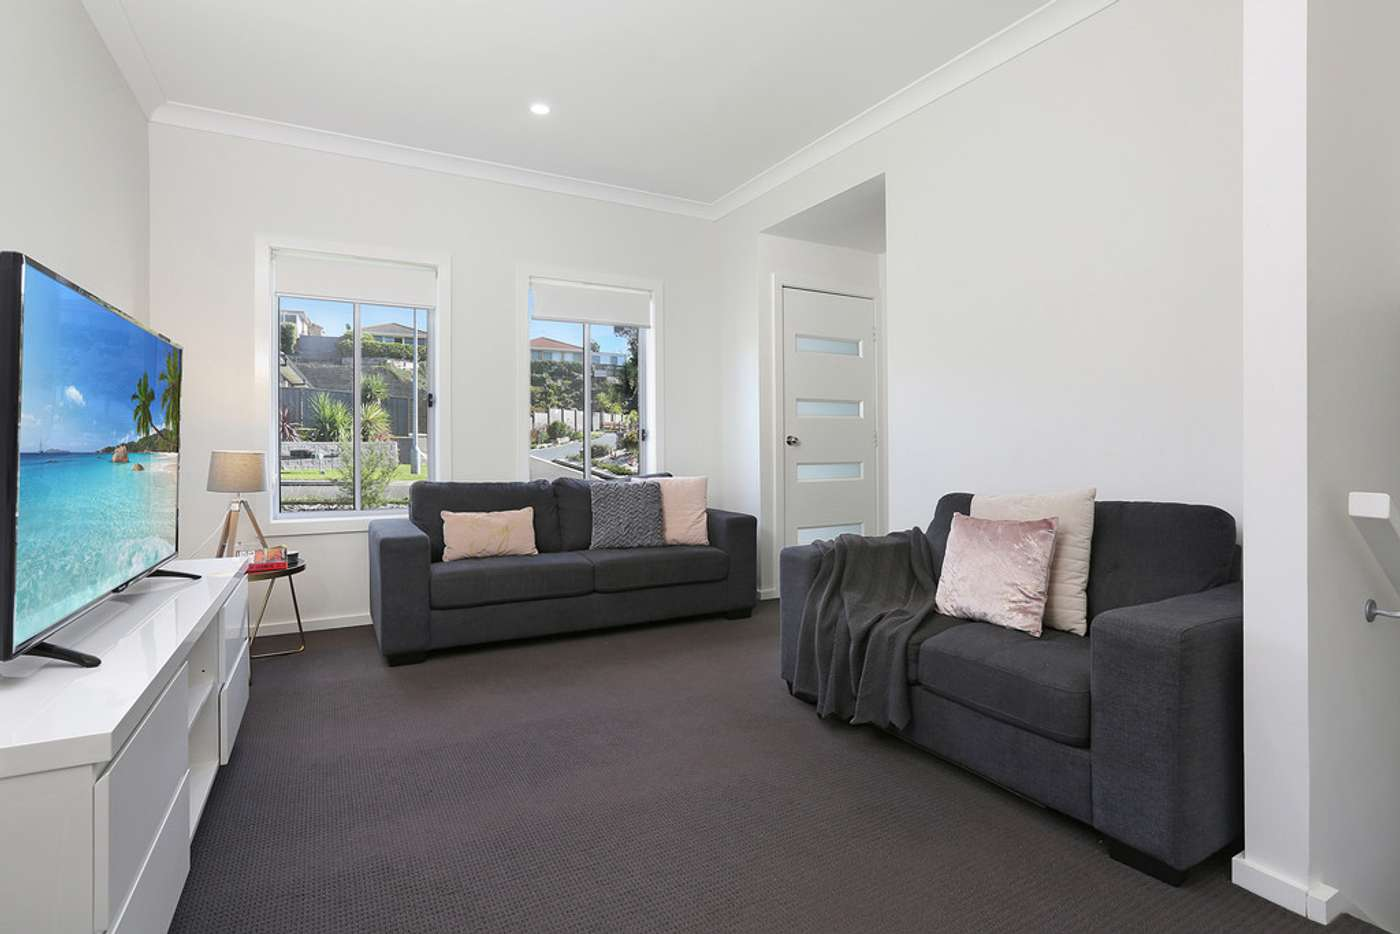 Sixth view of Homely house listing, 16 The Arches, Kanahooka NSW 2530